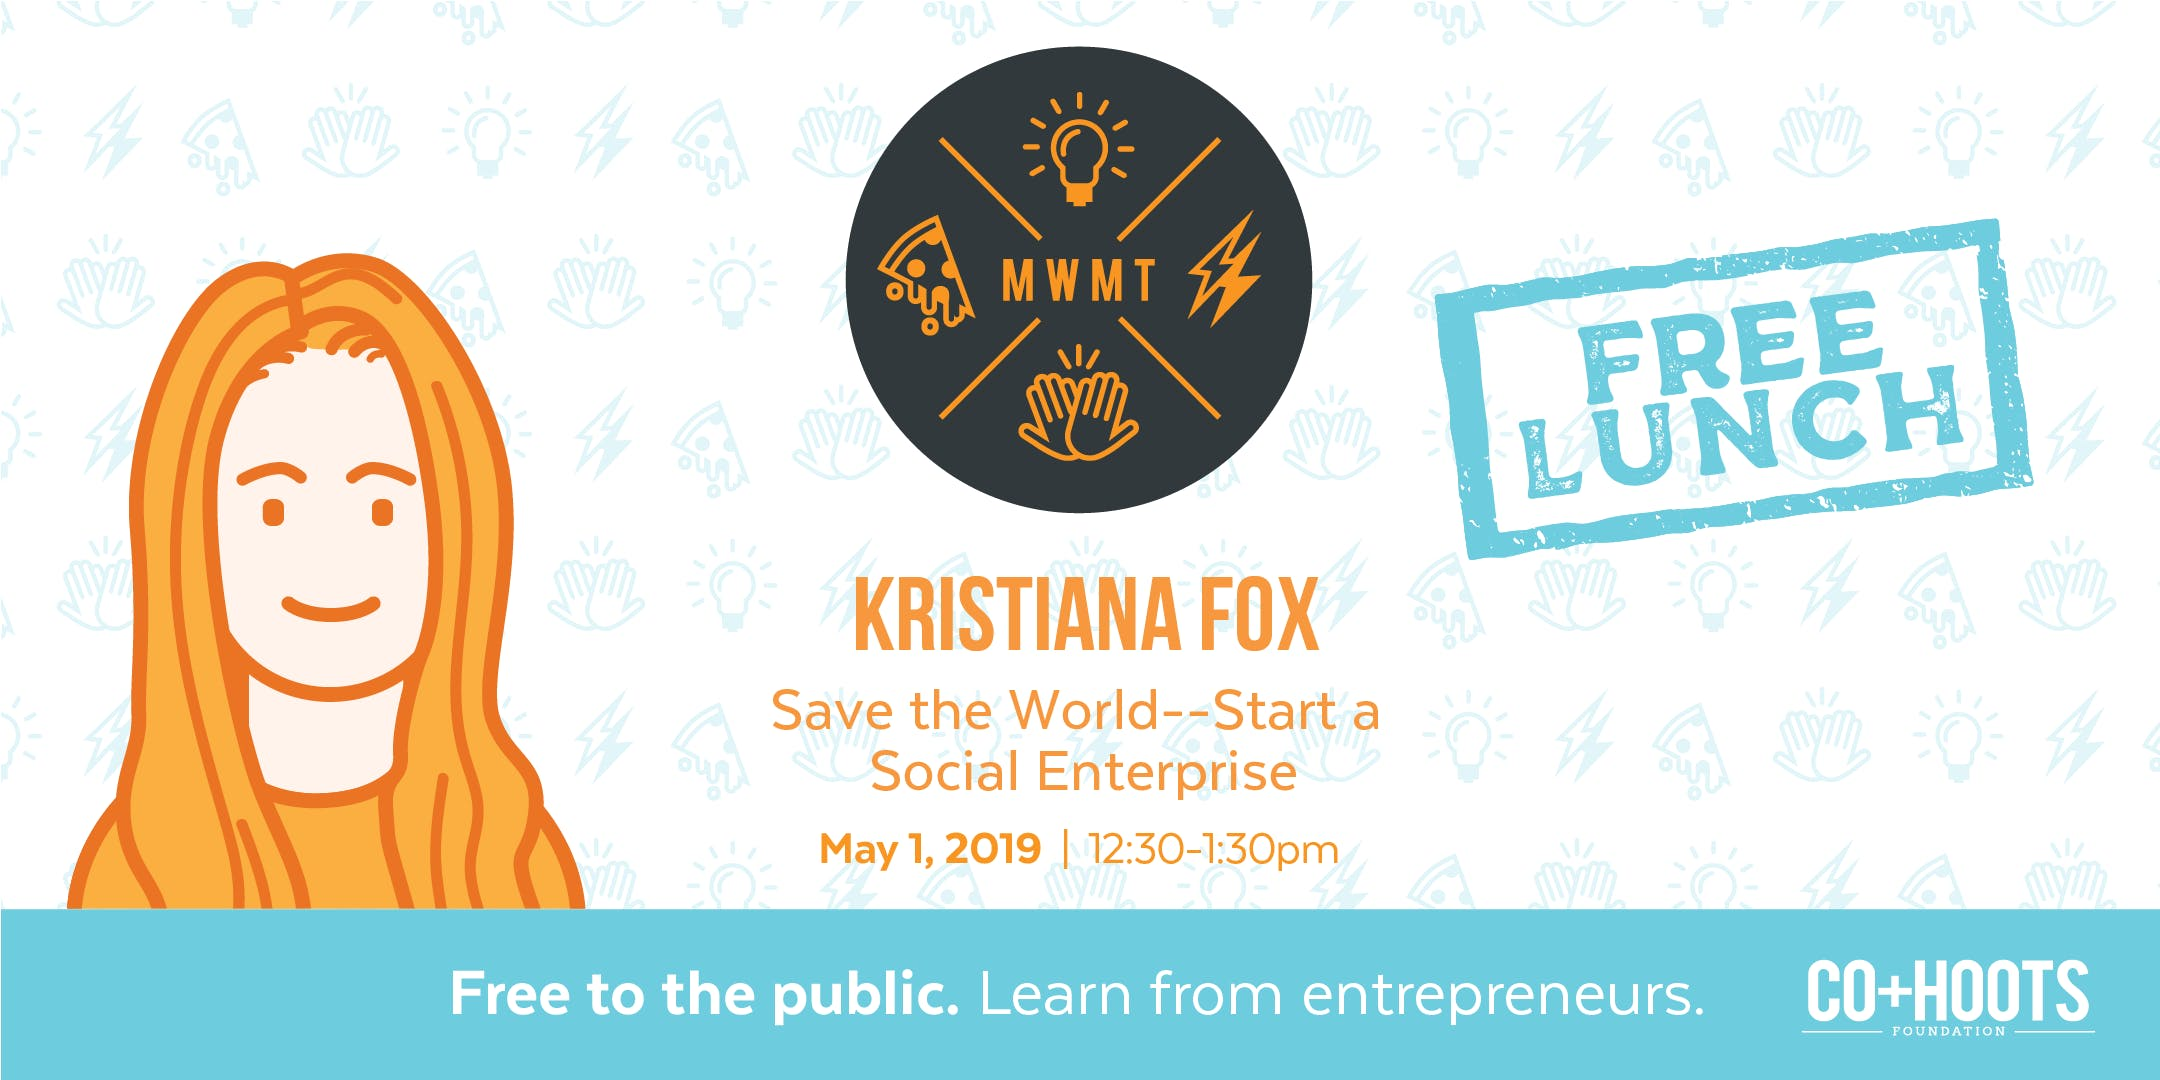 Save the World--Start a Social Enterprise (FREE LUNCH)